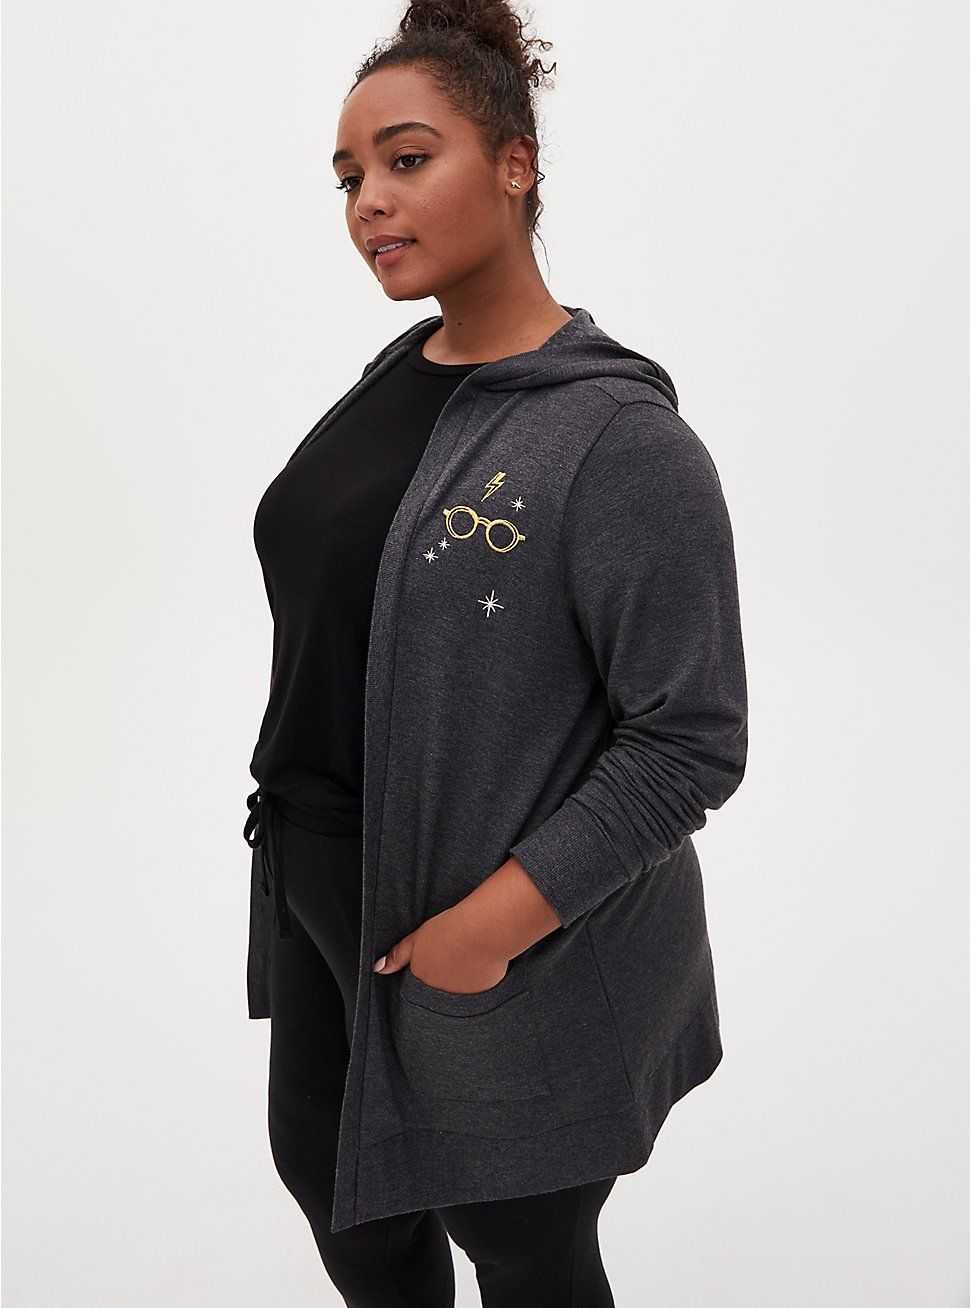 Harry Potter Glasses Embroidered Charcoal Fleece Hooded Cardigan, MULTI, hi-res